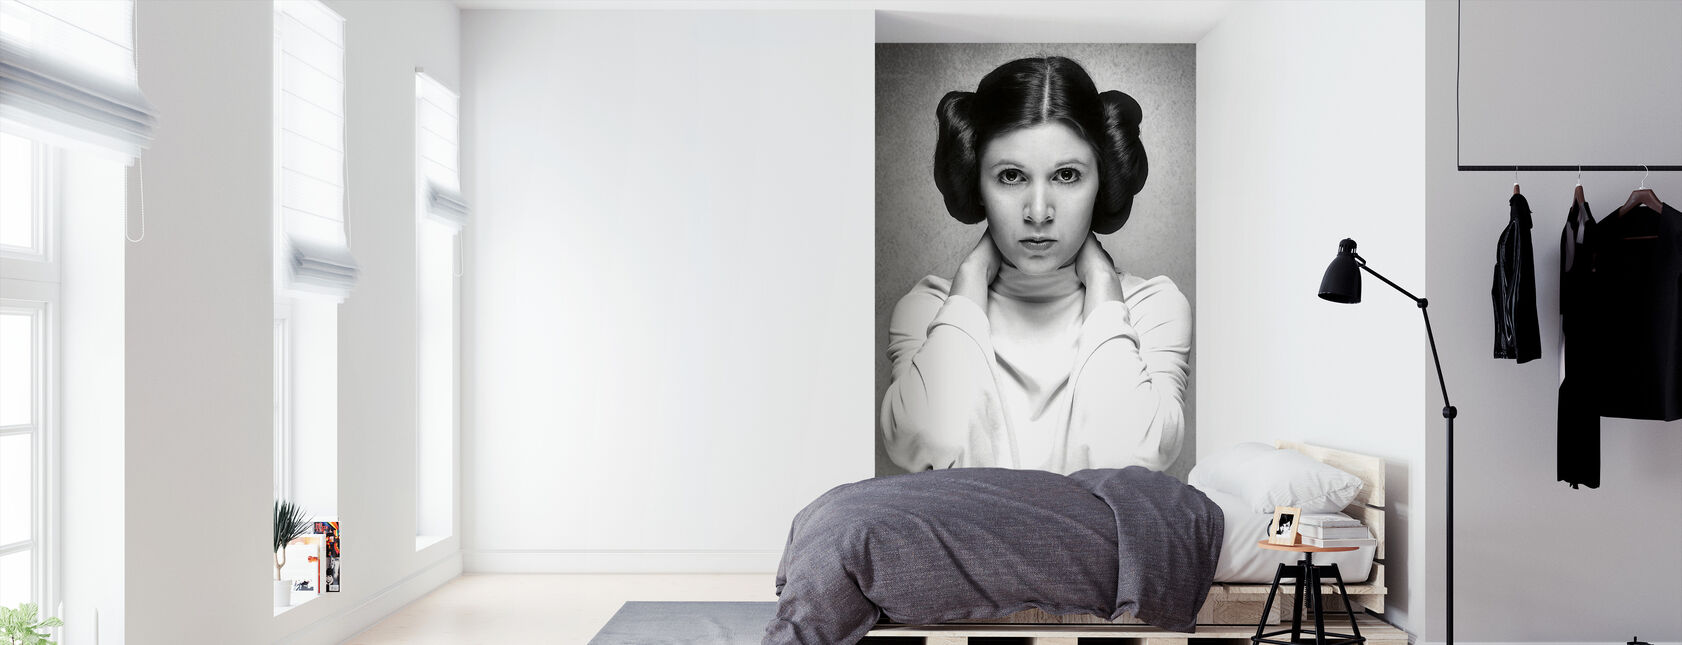 Prinses Leia - Carrie Fisher - Behang - Slaapkamer